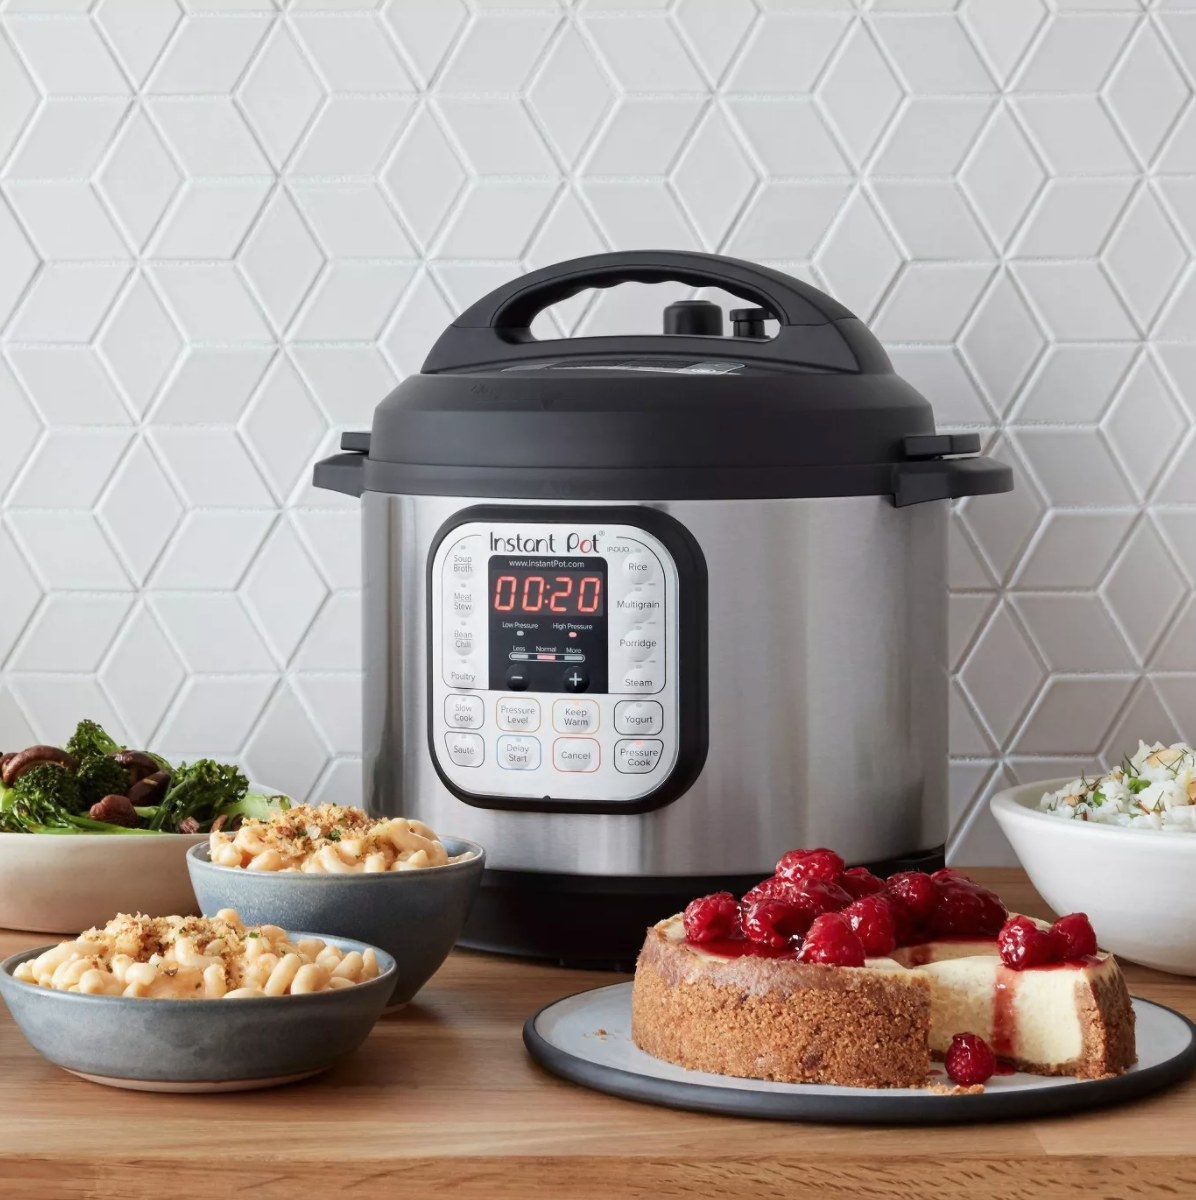 A silver InstantPot with a black top and digital screen